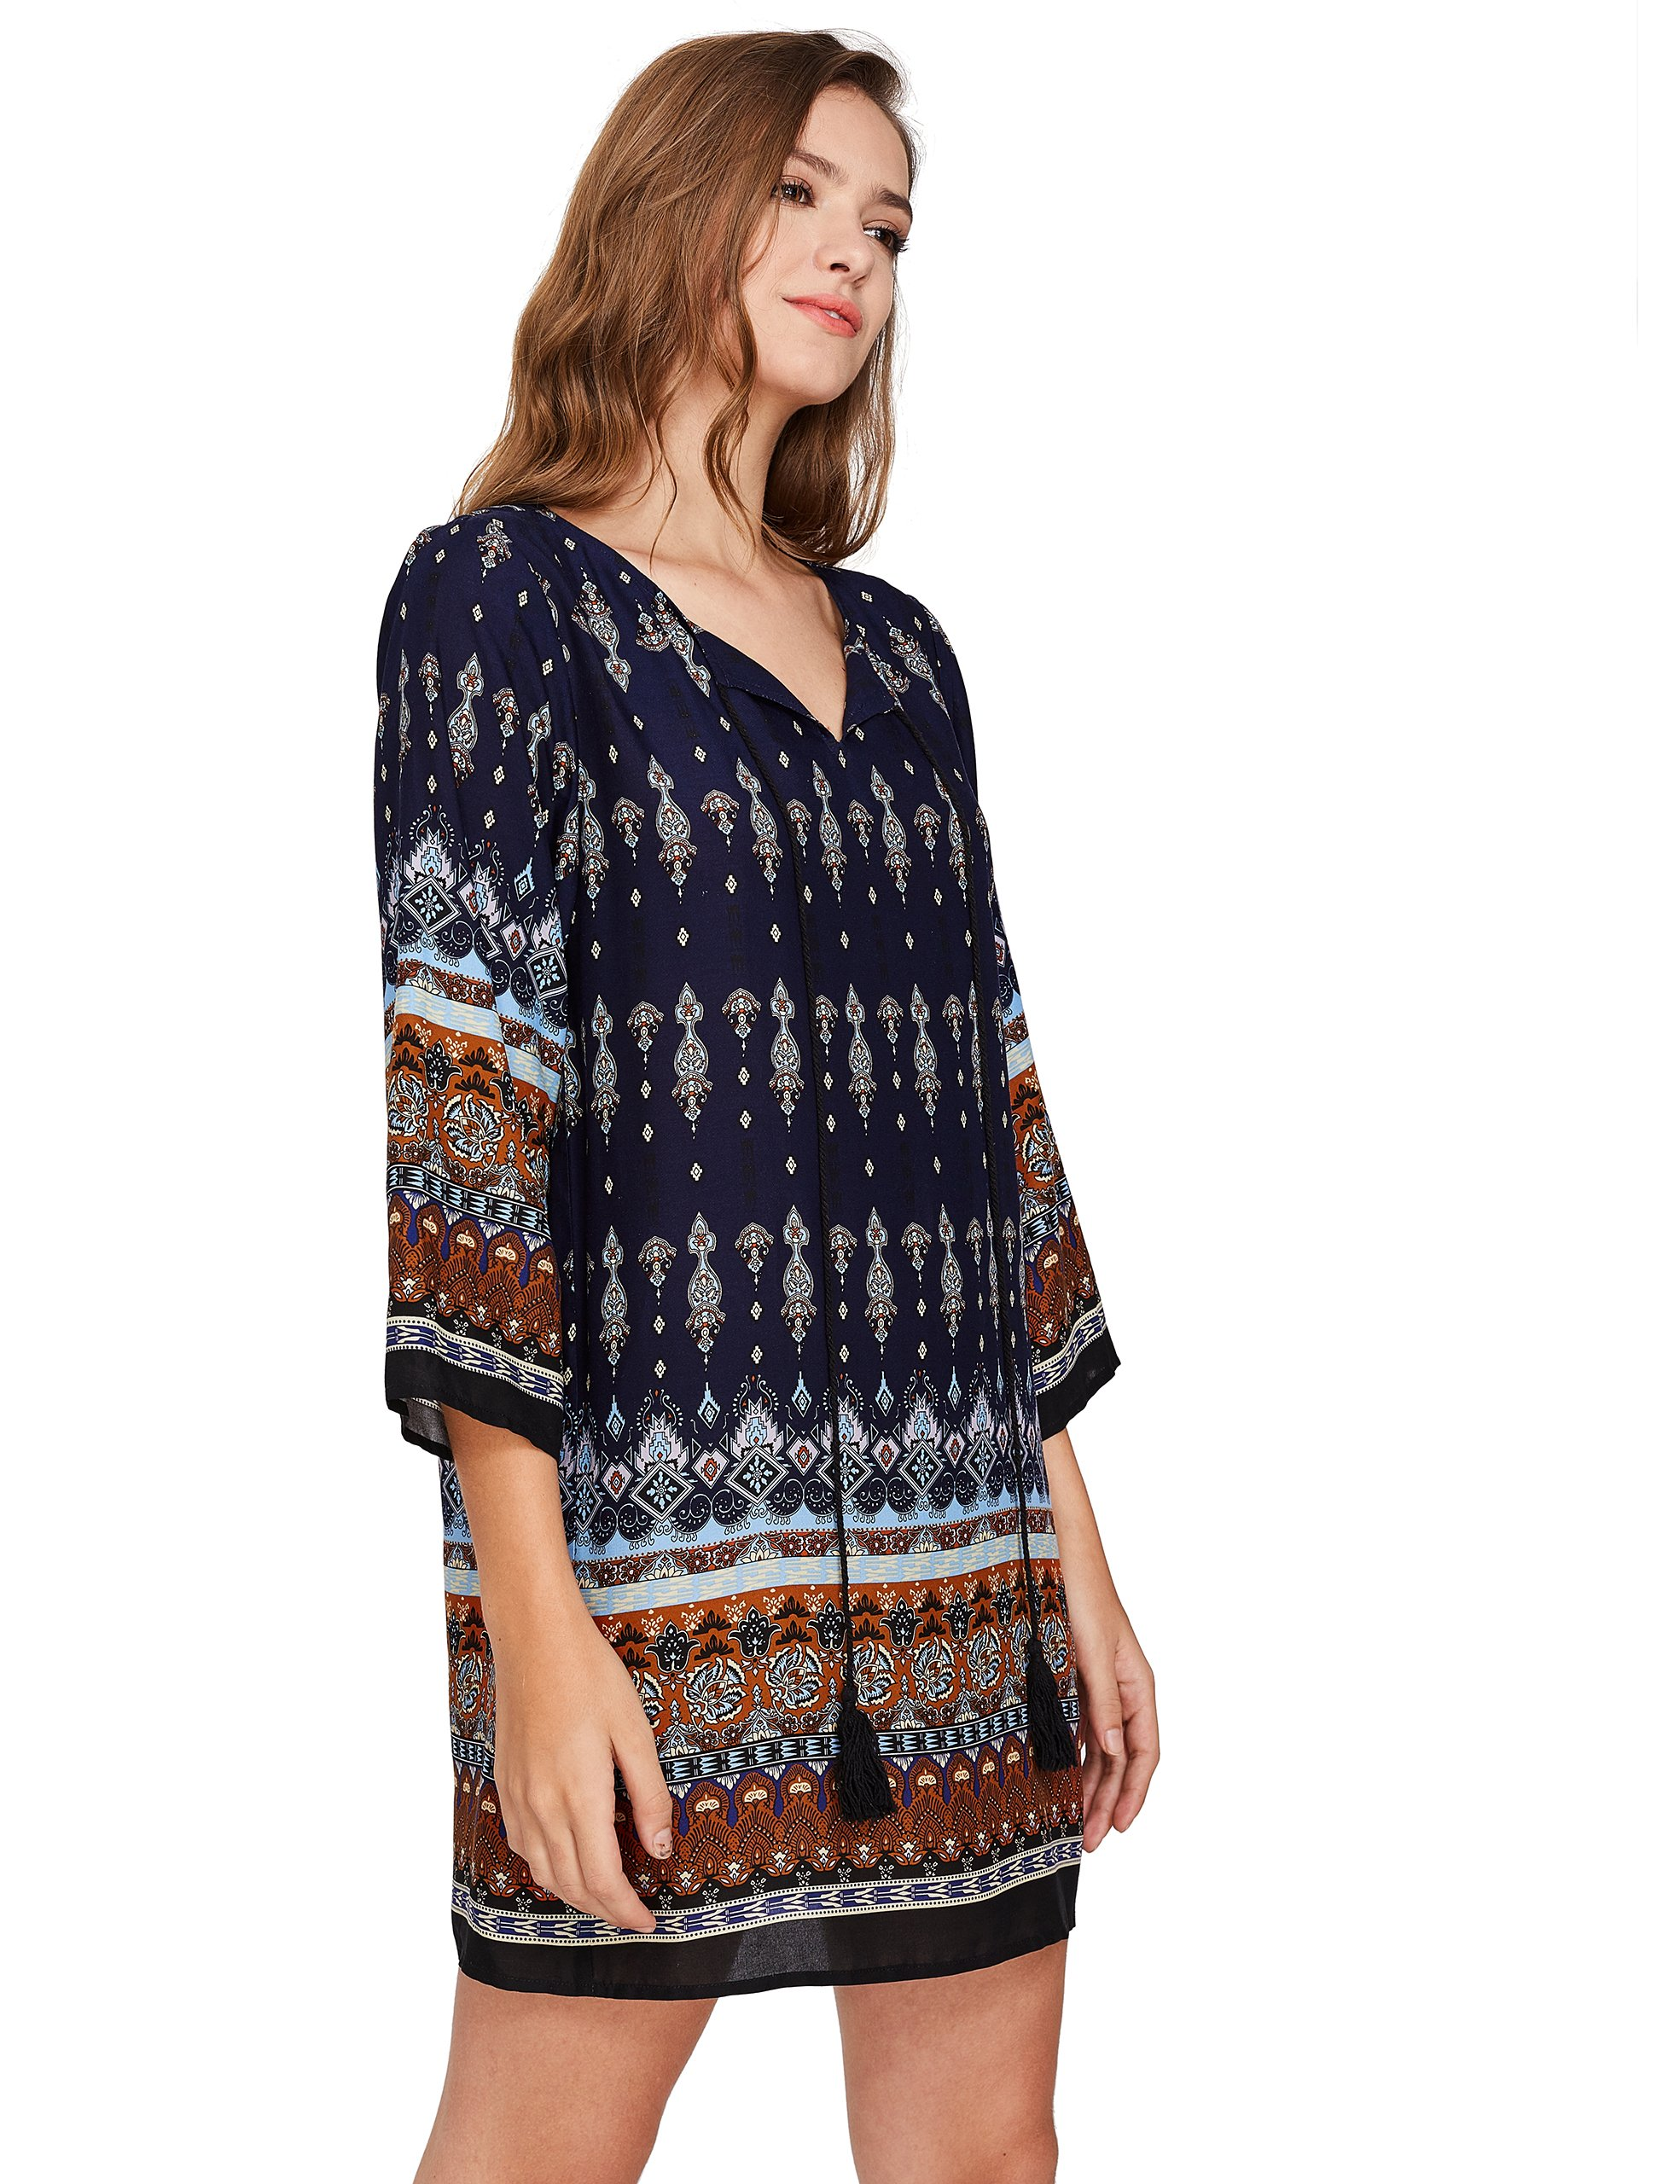 ROMWE Women's Boho Bohemian Tribal Print Summer Beach Dress Navy S by Romwe (Image #4)